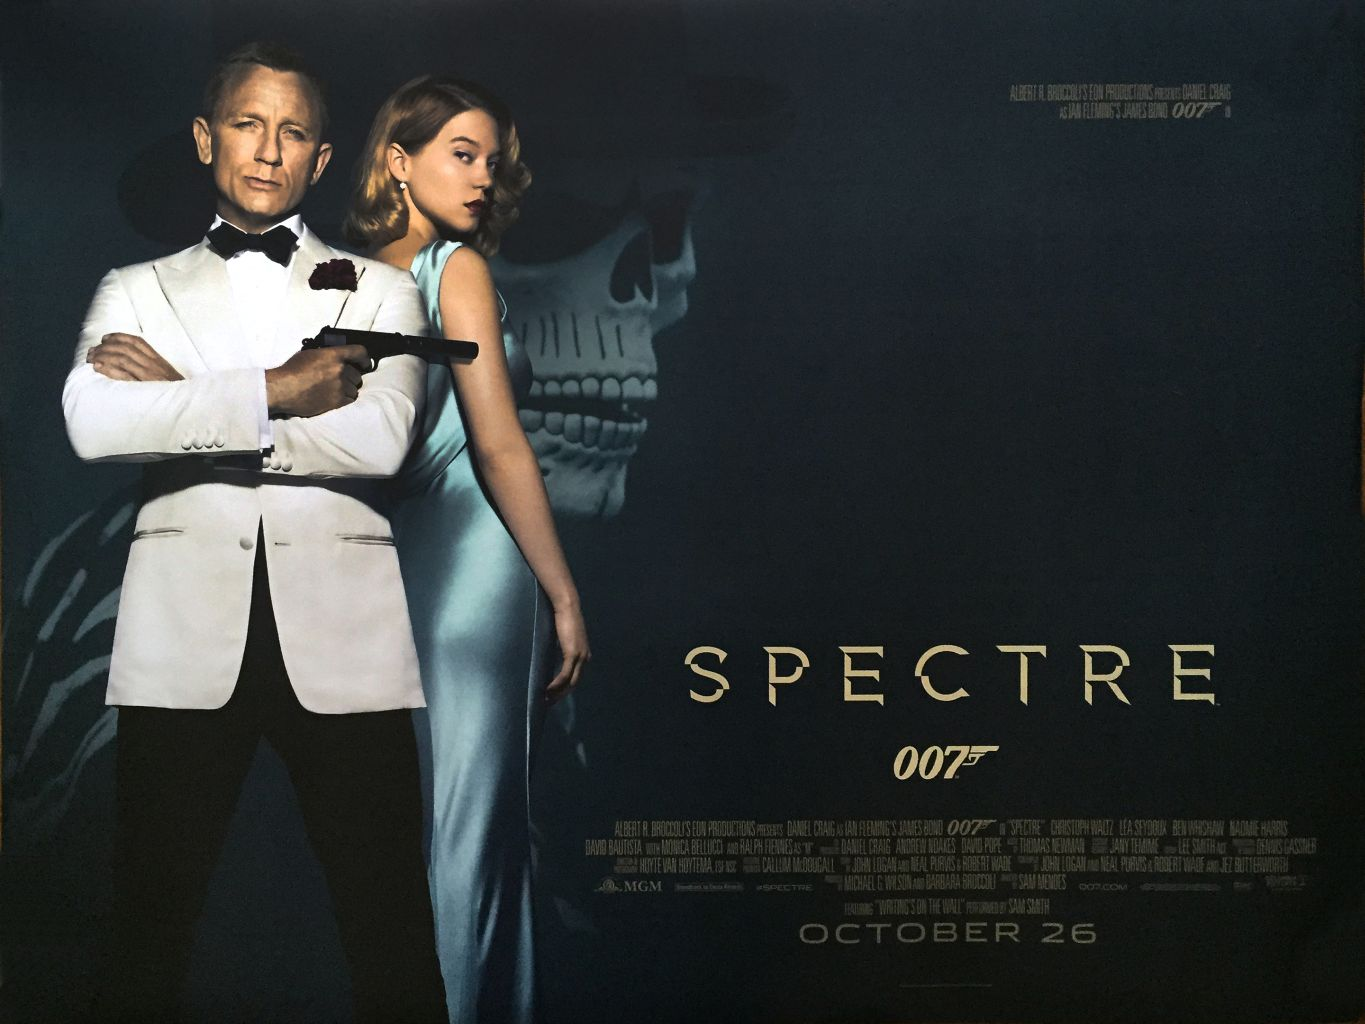 Spectre Movie Overview